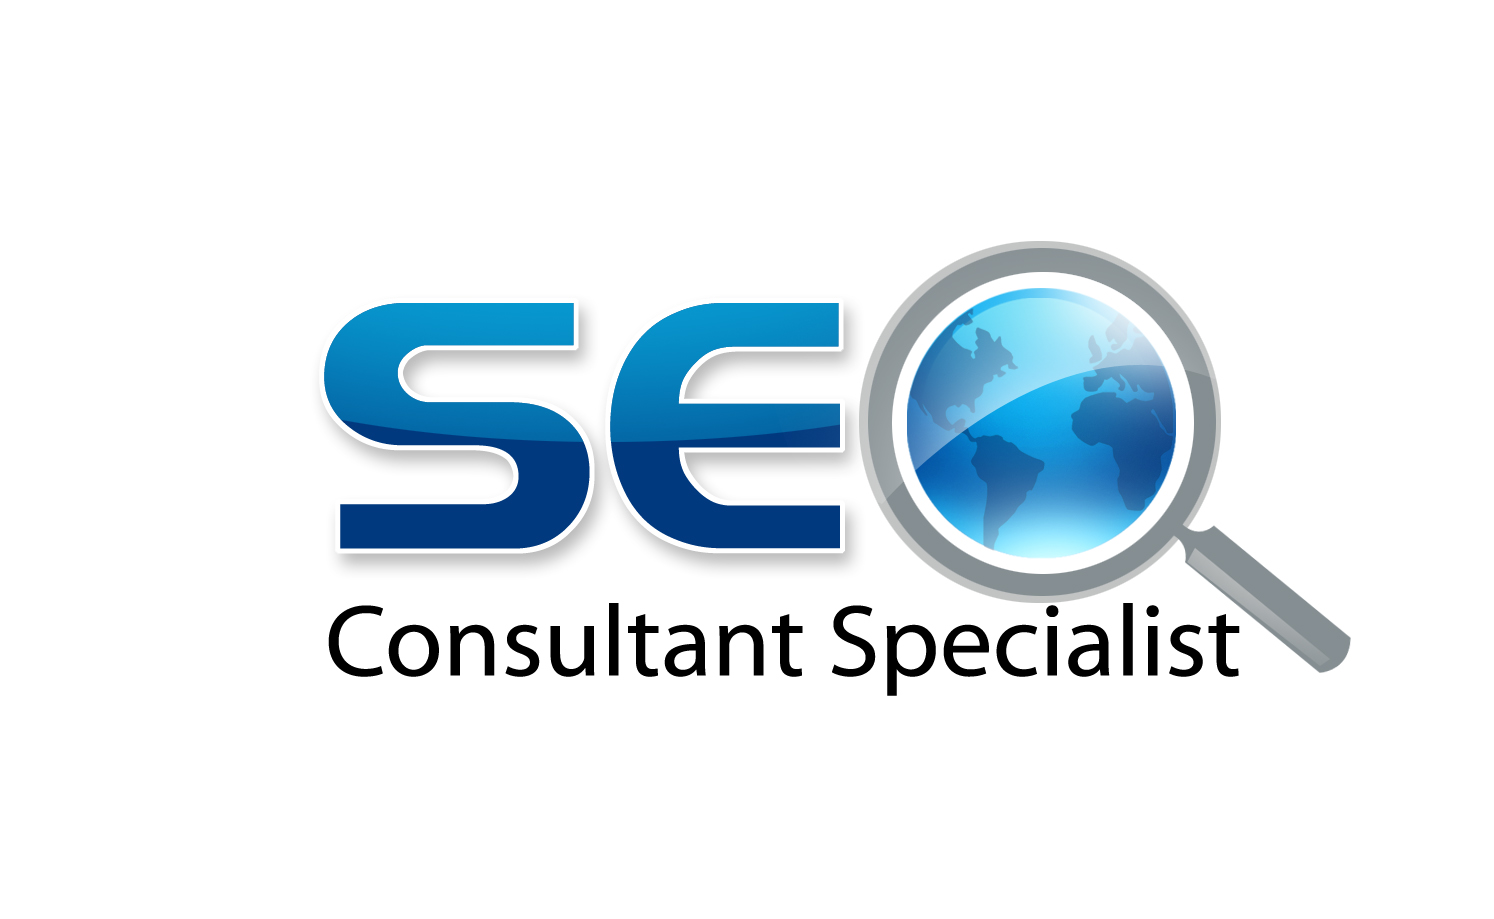 Seo consultant specialist a top ranked seo specialist on for Design consultancy